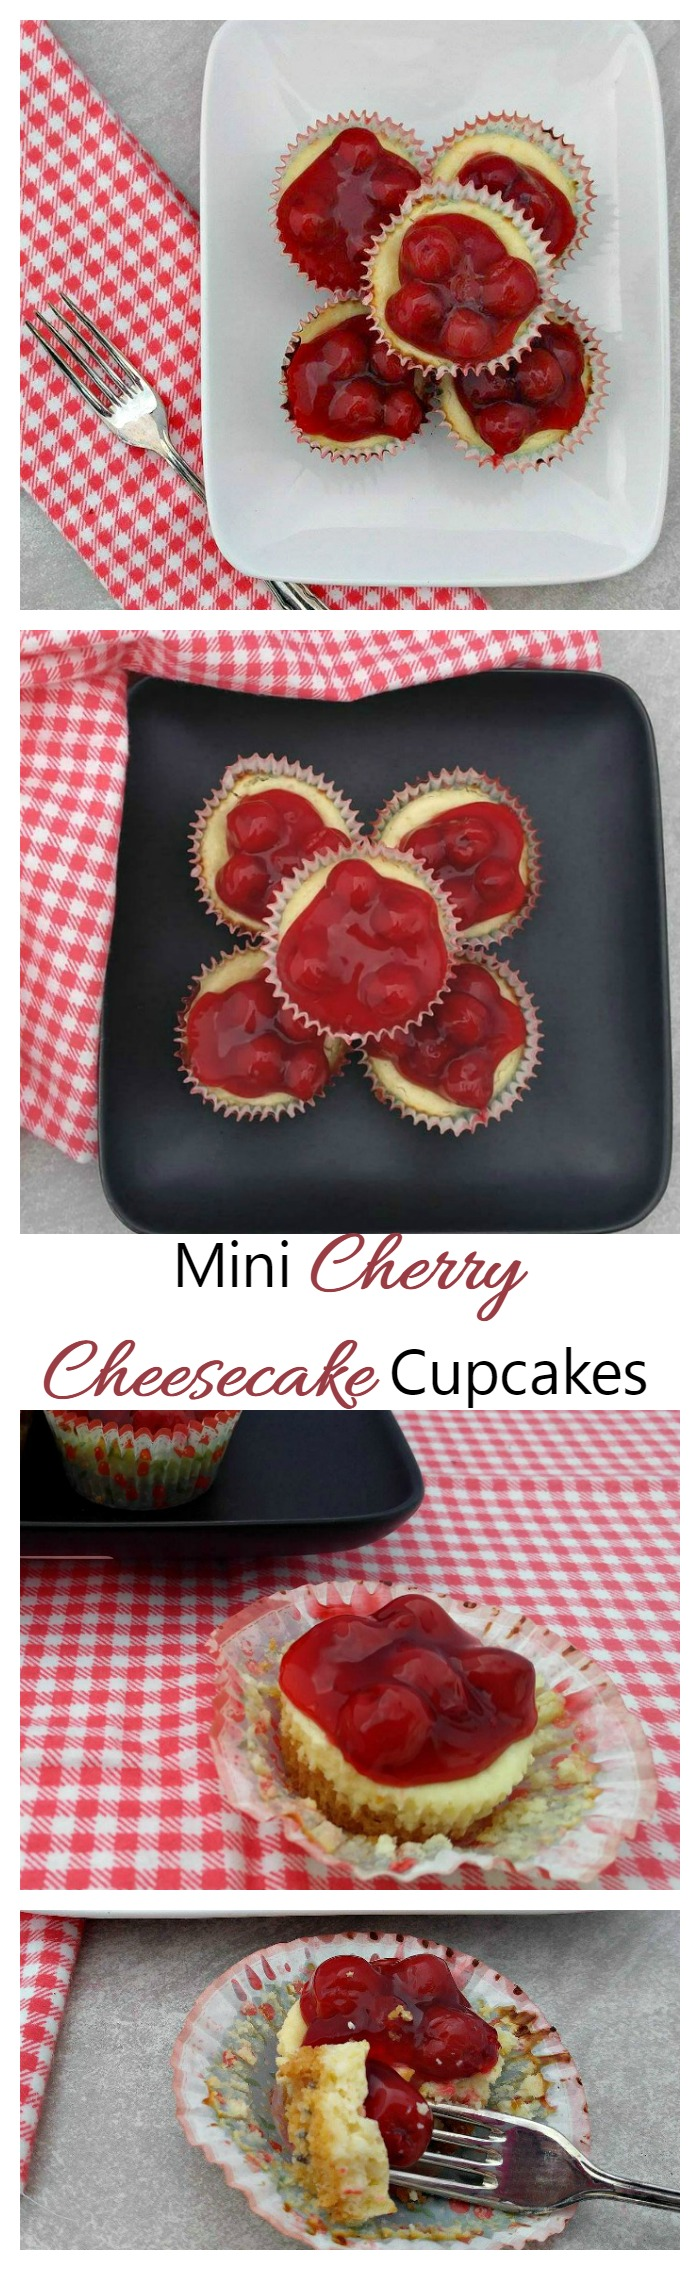 These delicious Mini cherry cheesecake cupcakes have a sweet, crunchy base and a rich creamy filling topped with luscious cherries. They are perfect for Valentine's day or any special occasion.